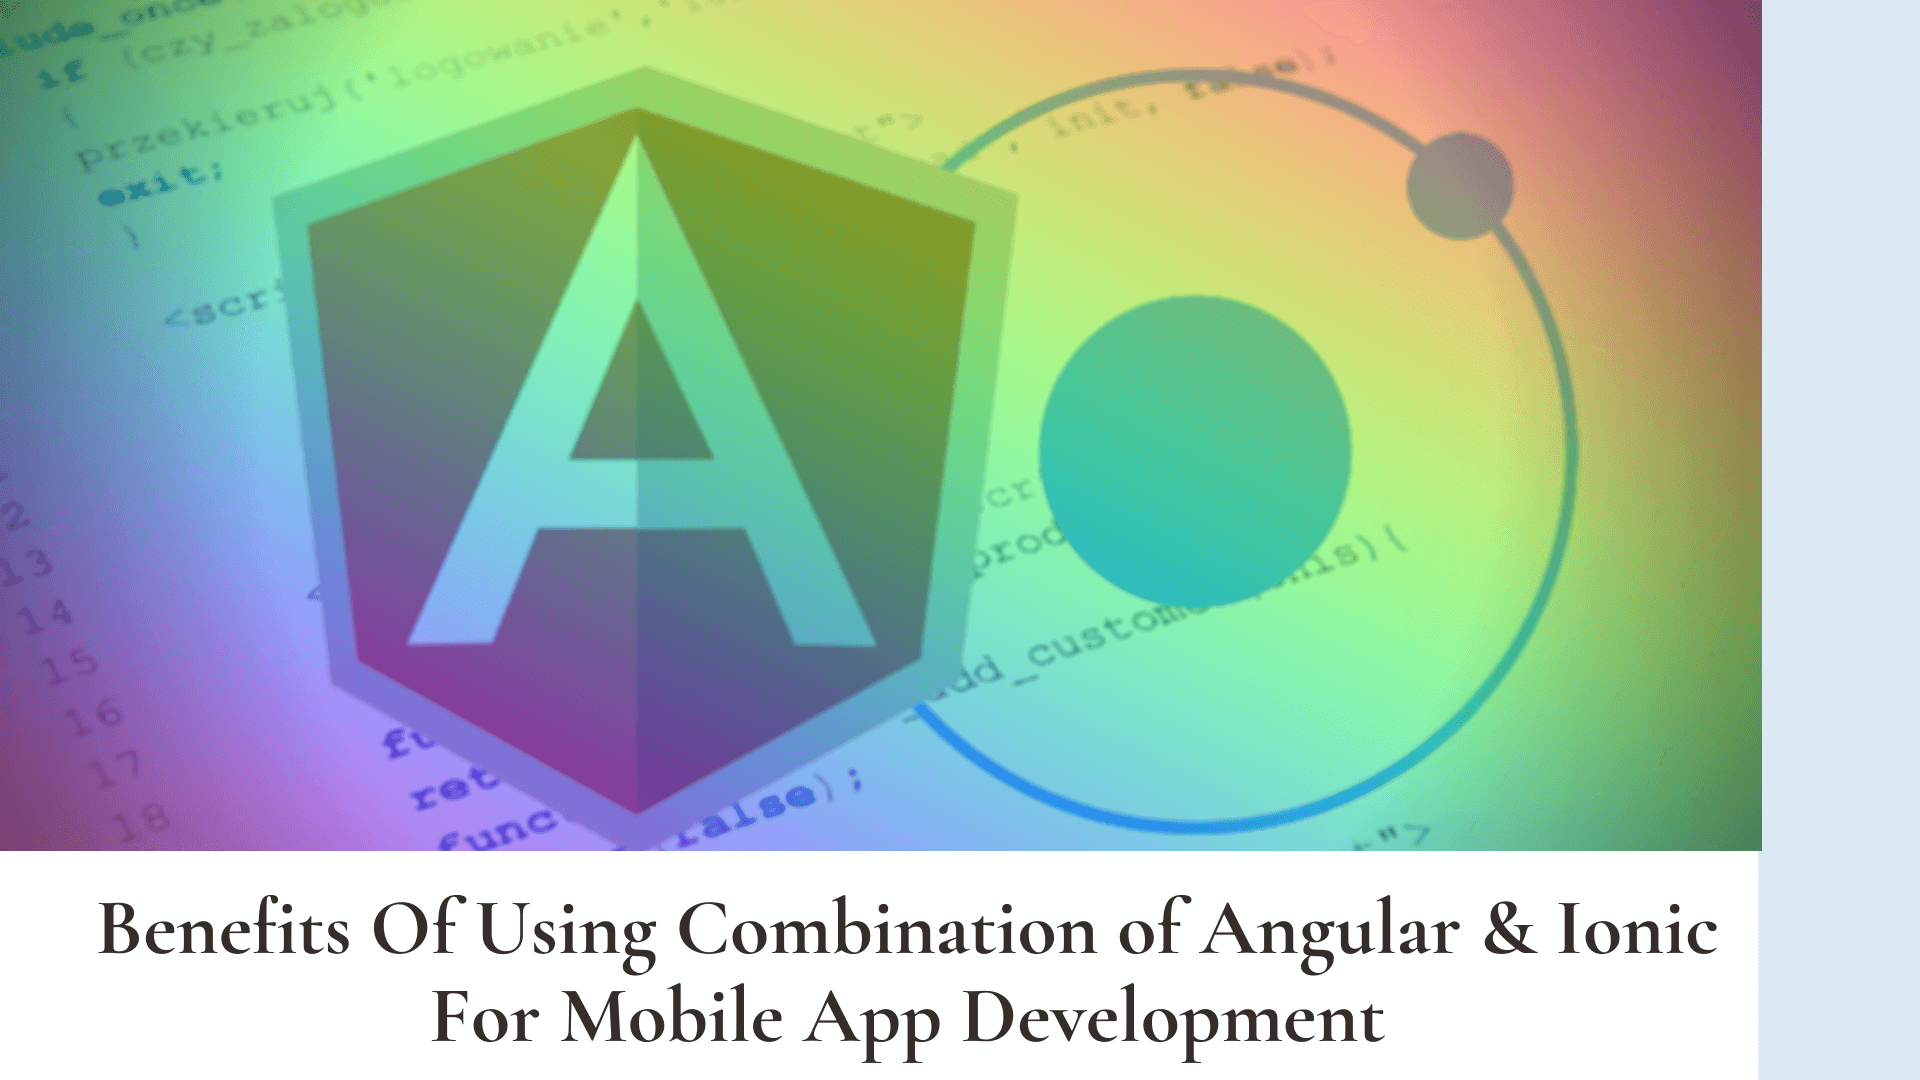 Leverage The Benefits Of Using Winning Combination Angular & Ionic For Mobile App Development